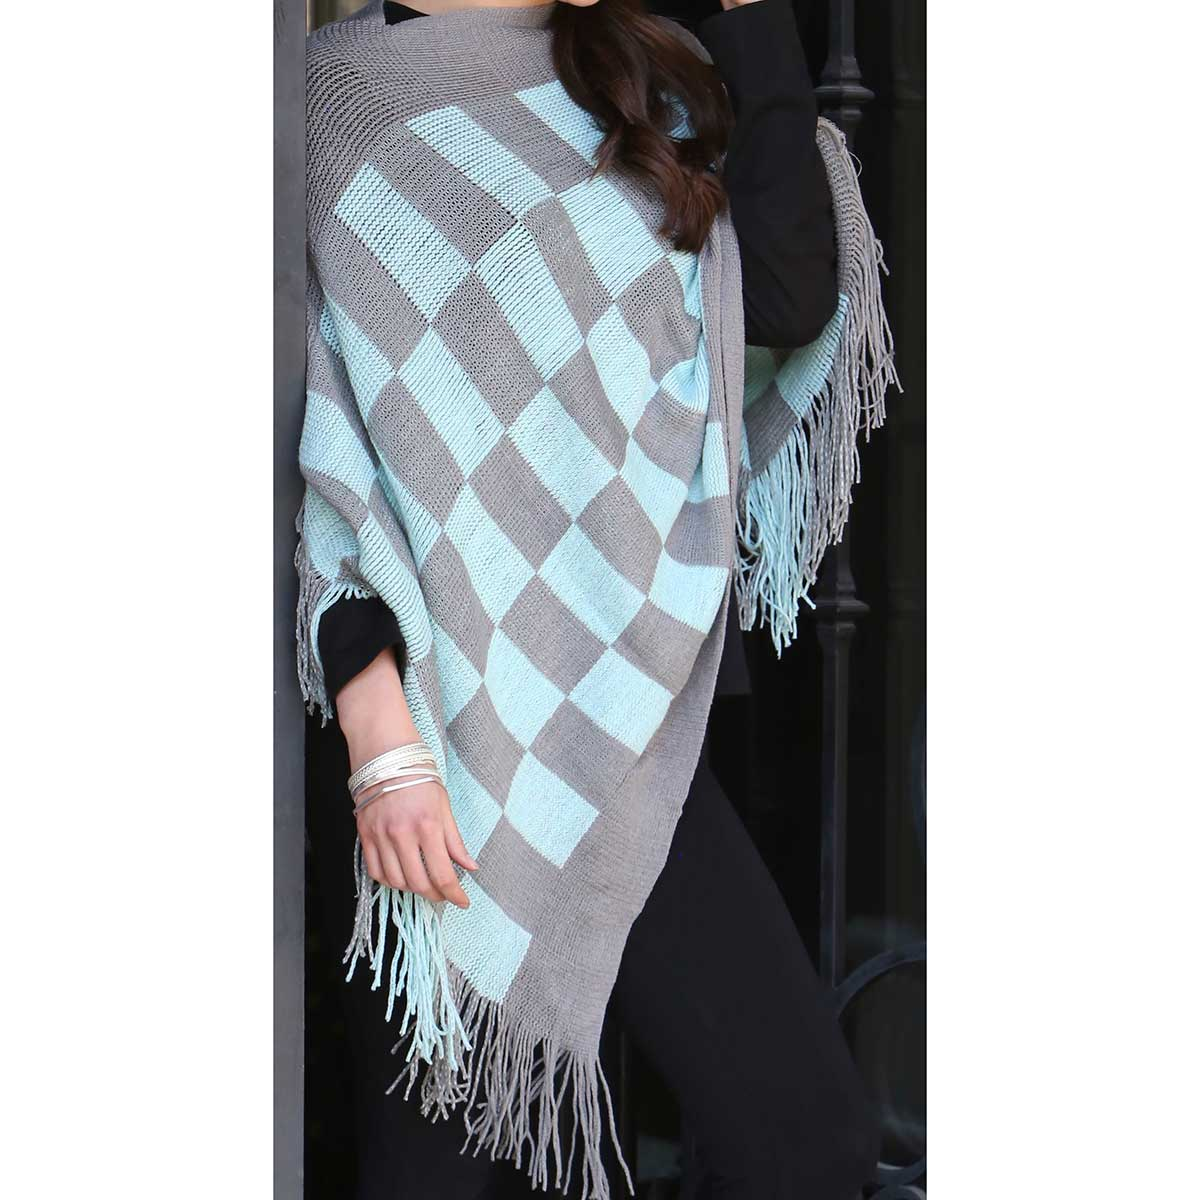 Ming Checkered Knit Poncho with Fringe *30sp